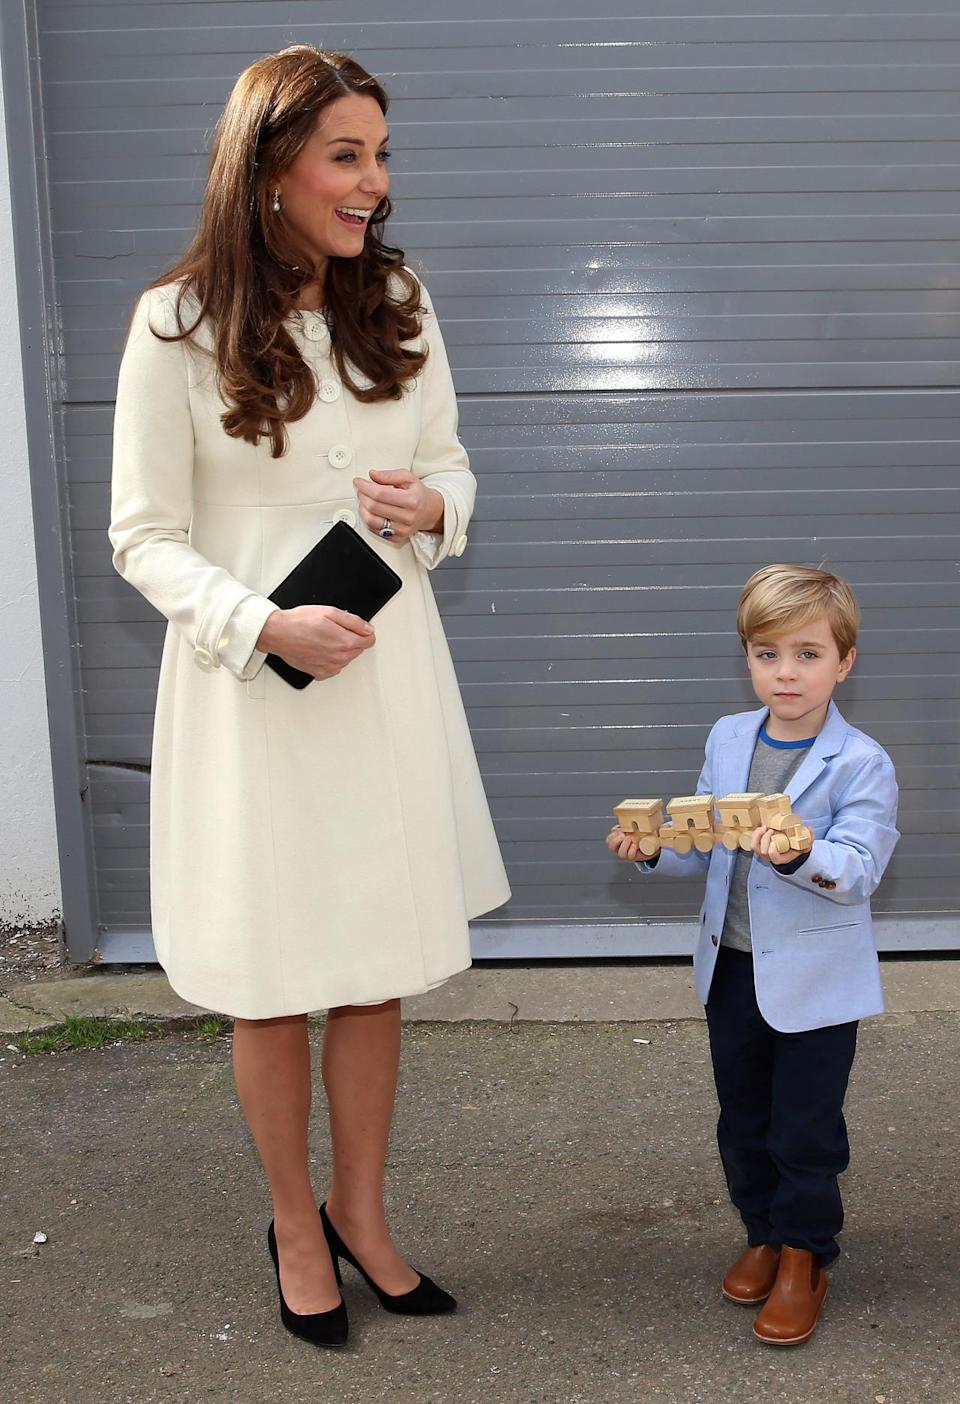 <p>The Duchess visited the set of Downton Abbey wearing a cream maternity coat by Jojo Maman Bebe. Black Stuart Weitzman pumps and a Mulberry leather clutch finished off the look perfectly. </p><p><i>[Photo: PA]</i></p>